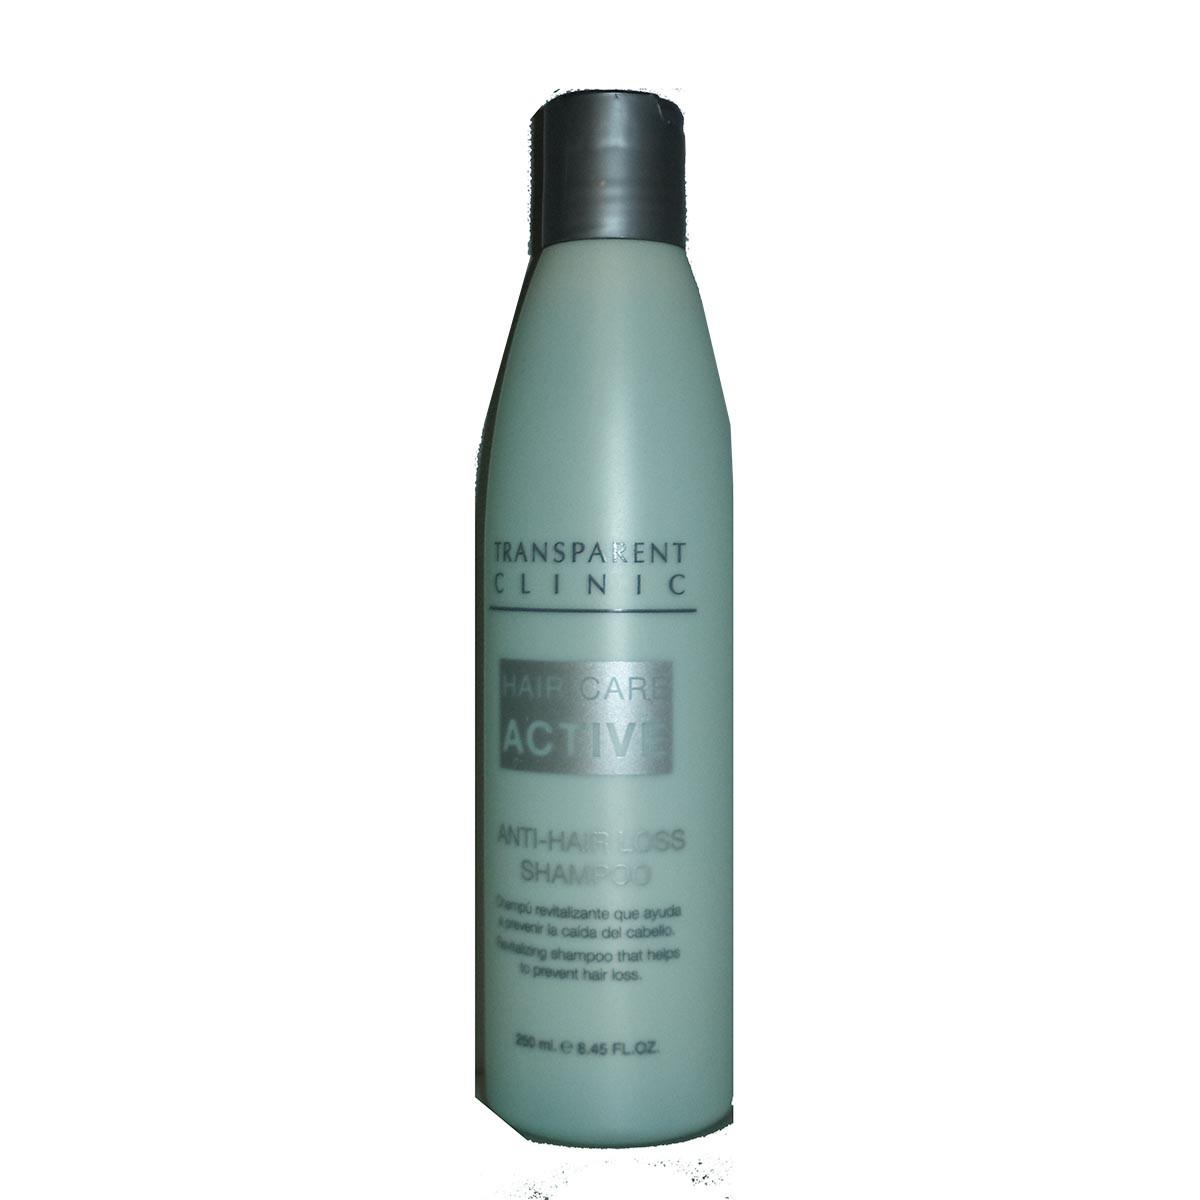 Transclini Hair Care Antifall Shampoo 250 ml